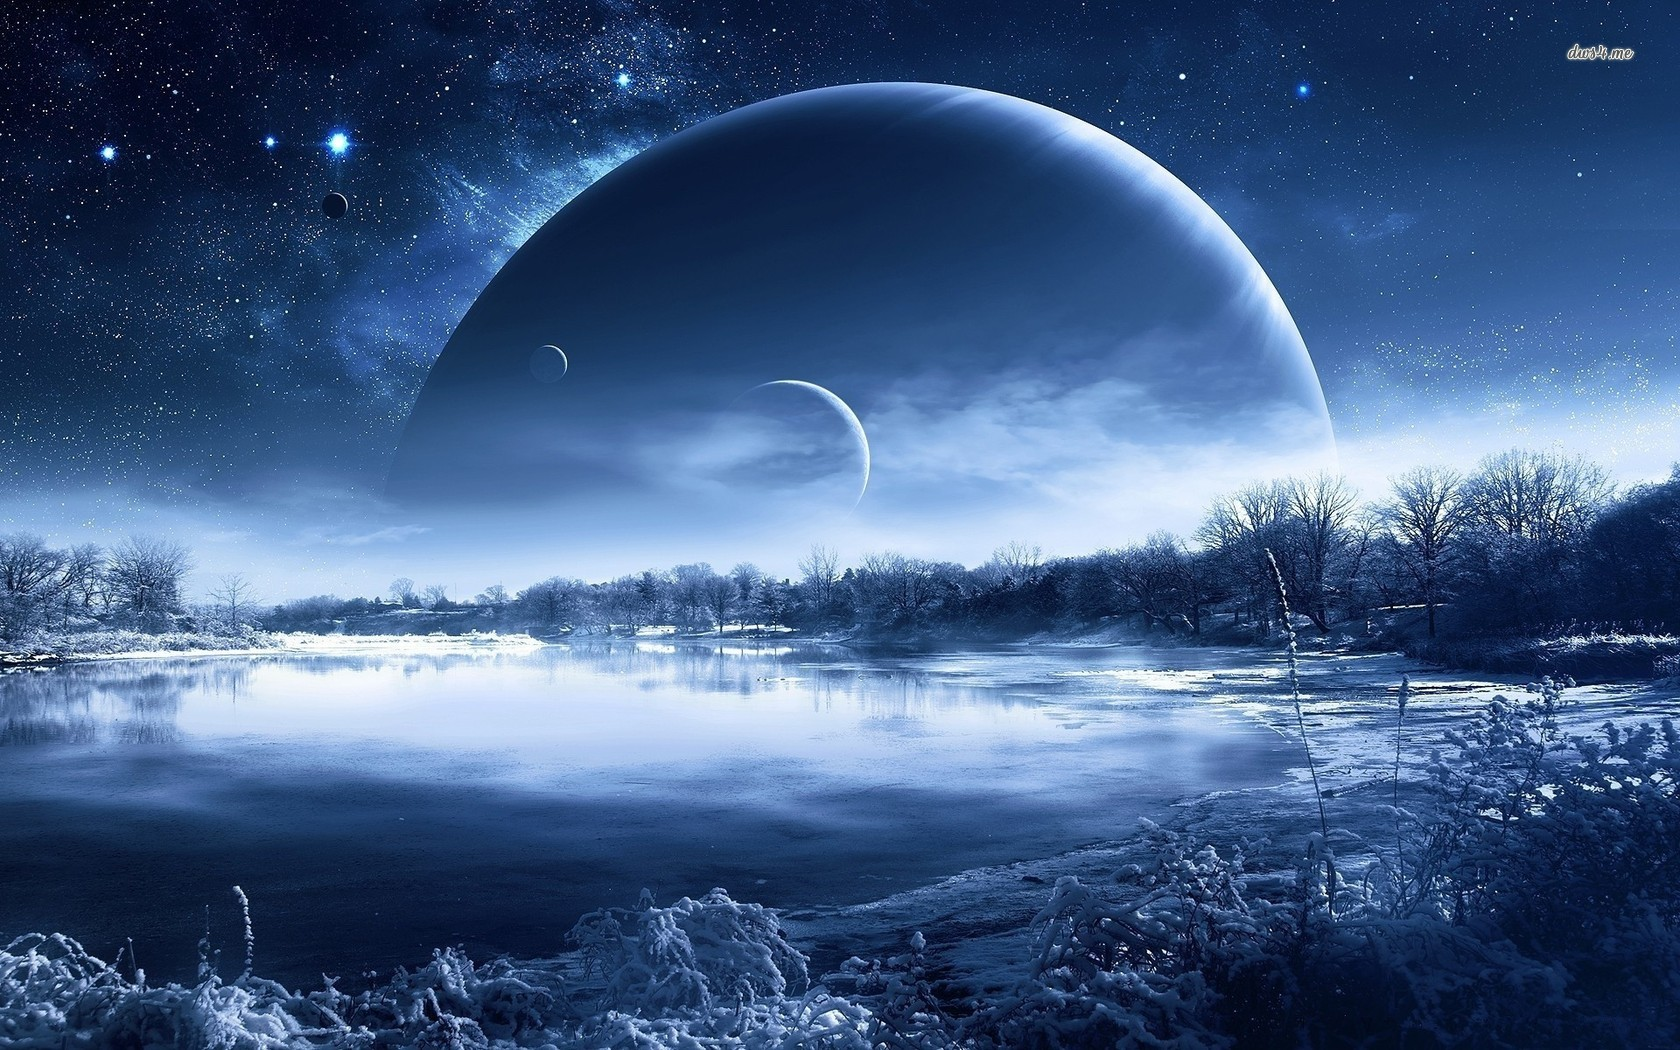 18800-icy-planet-1680x1050-fantasy-wallpaper.jpg